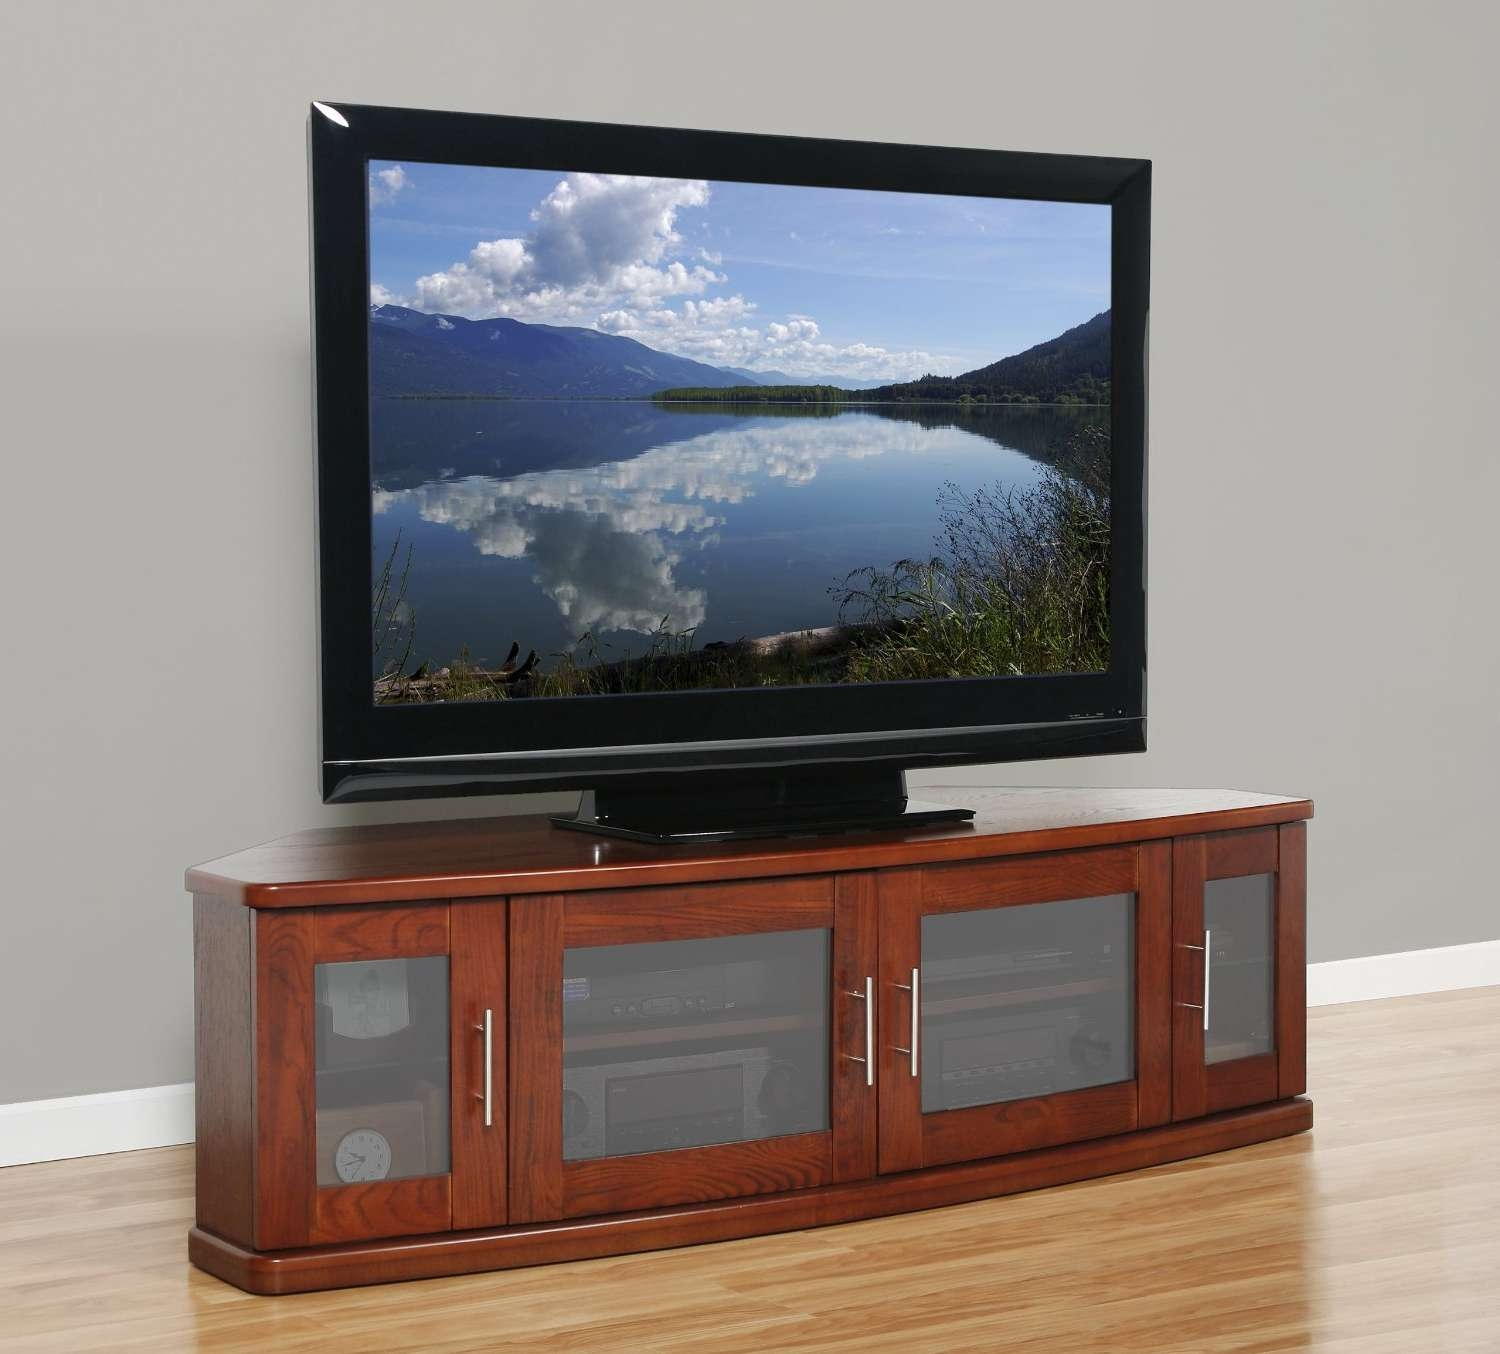 Curved Brown Figured Cherry Wood Low Cabinet For Tv Stand With 4 Regarding Wooden Tv Cabinets With Glass Doors (View 4 of 20)